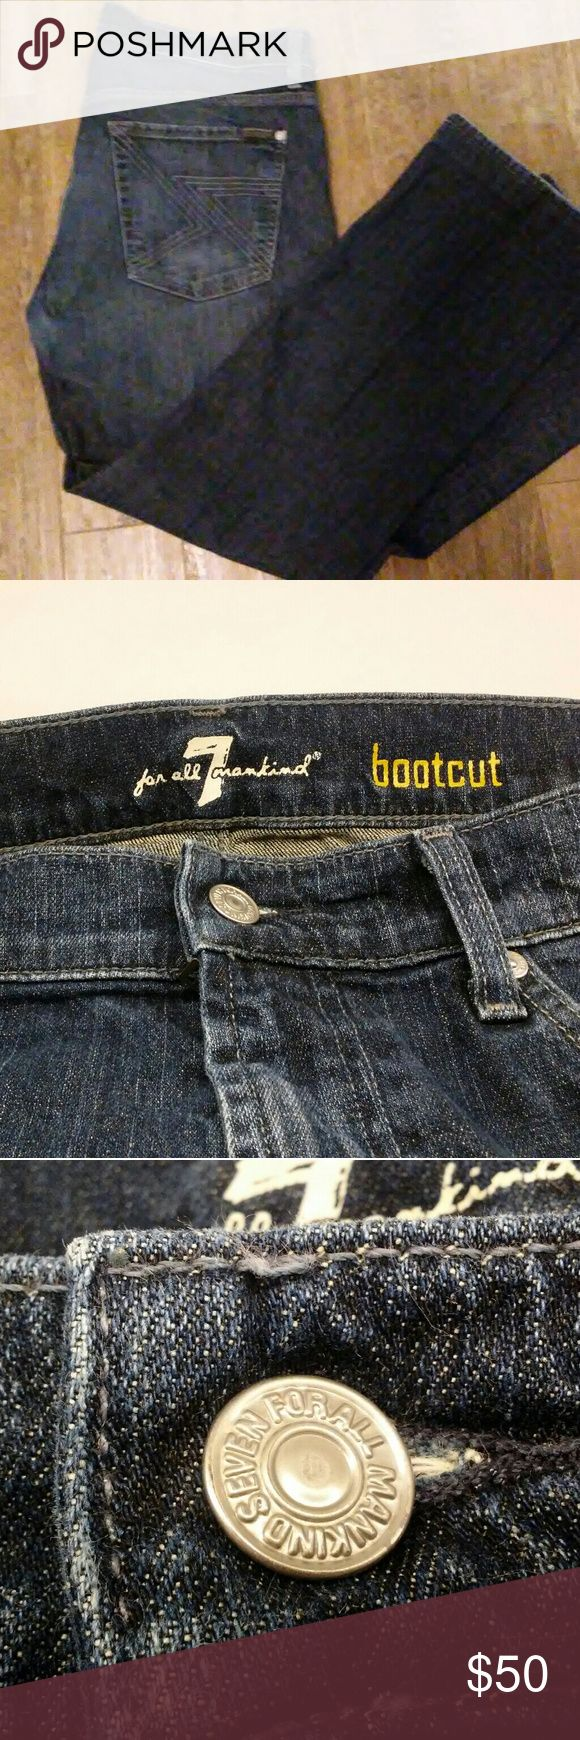 7 For All Mankind Men's Bootcut Dark Wash Jeans Super great condition 7 For All Mankind bootcut jeans with the black label. All buttons and rivets are stamped as they should be.   36waist and 28 inseam (photo show what looks like they have been hemmed)   Small snag on right hand thigh close to seam. Not sure if that is intentional distressing or not. 7 For All Mankind Jeans Bootcut